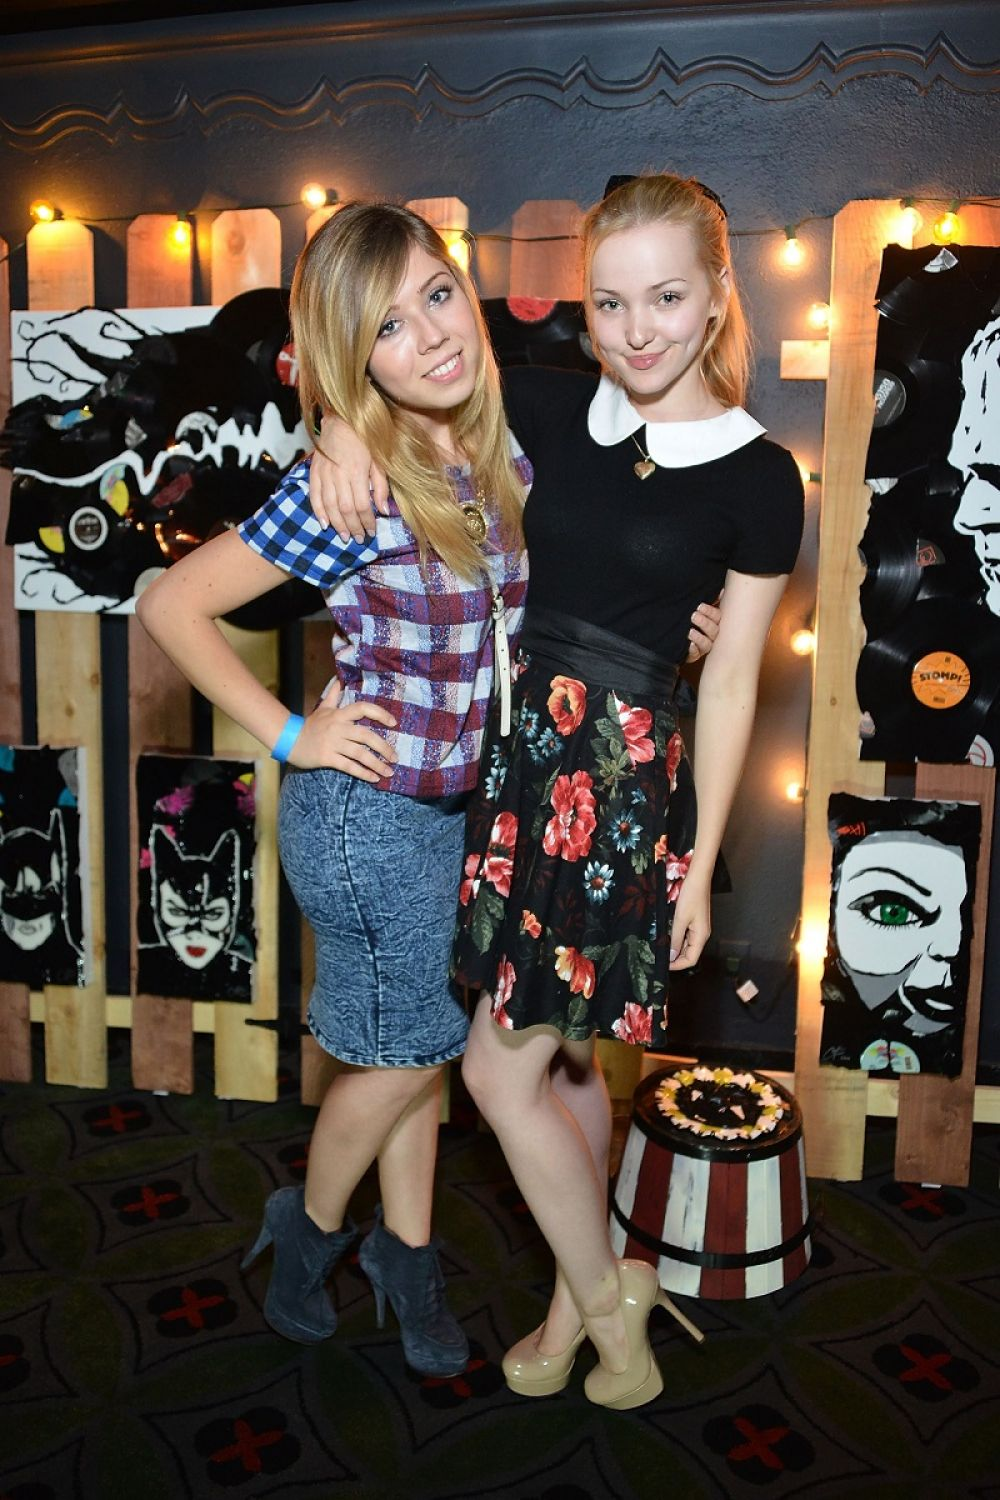 DOVE CAMERON and JENNETTE MCCURDY